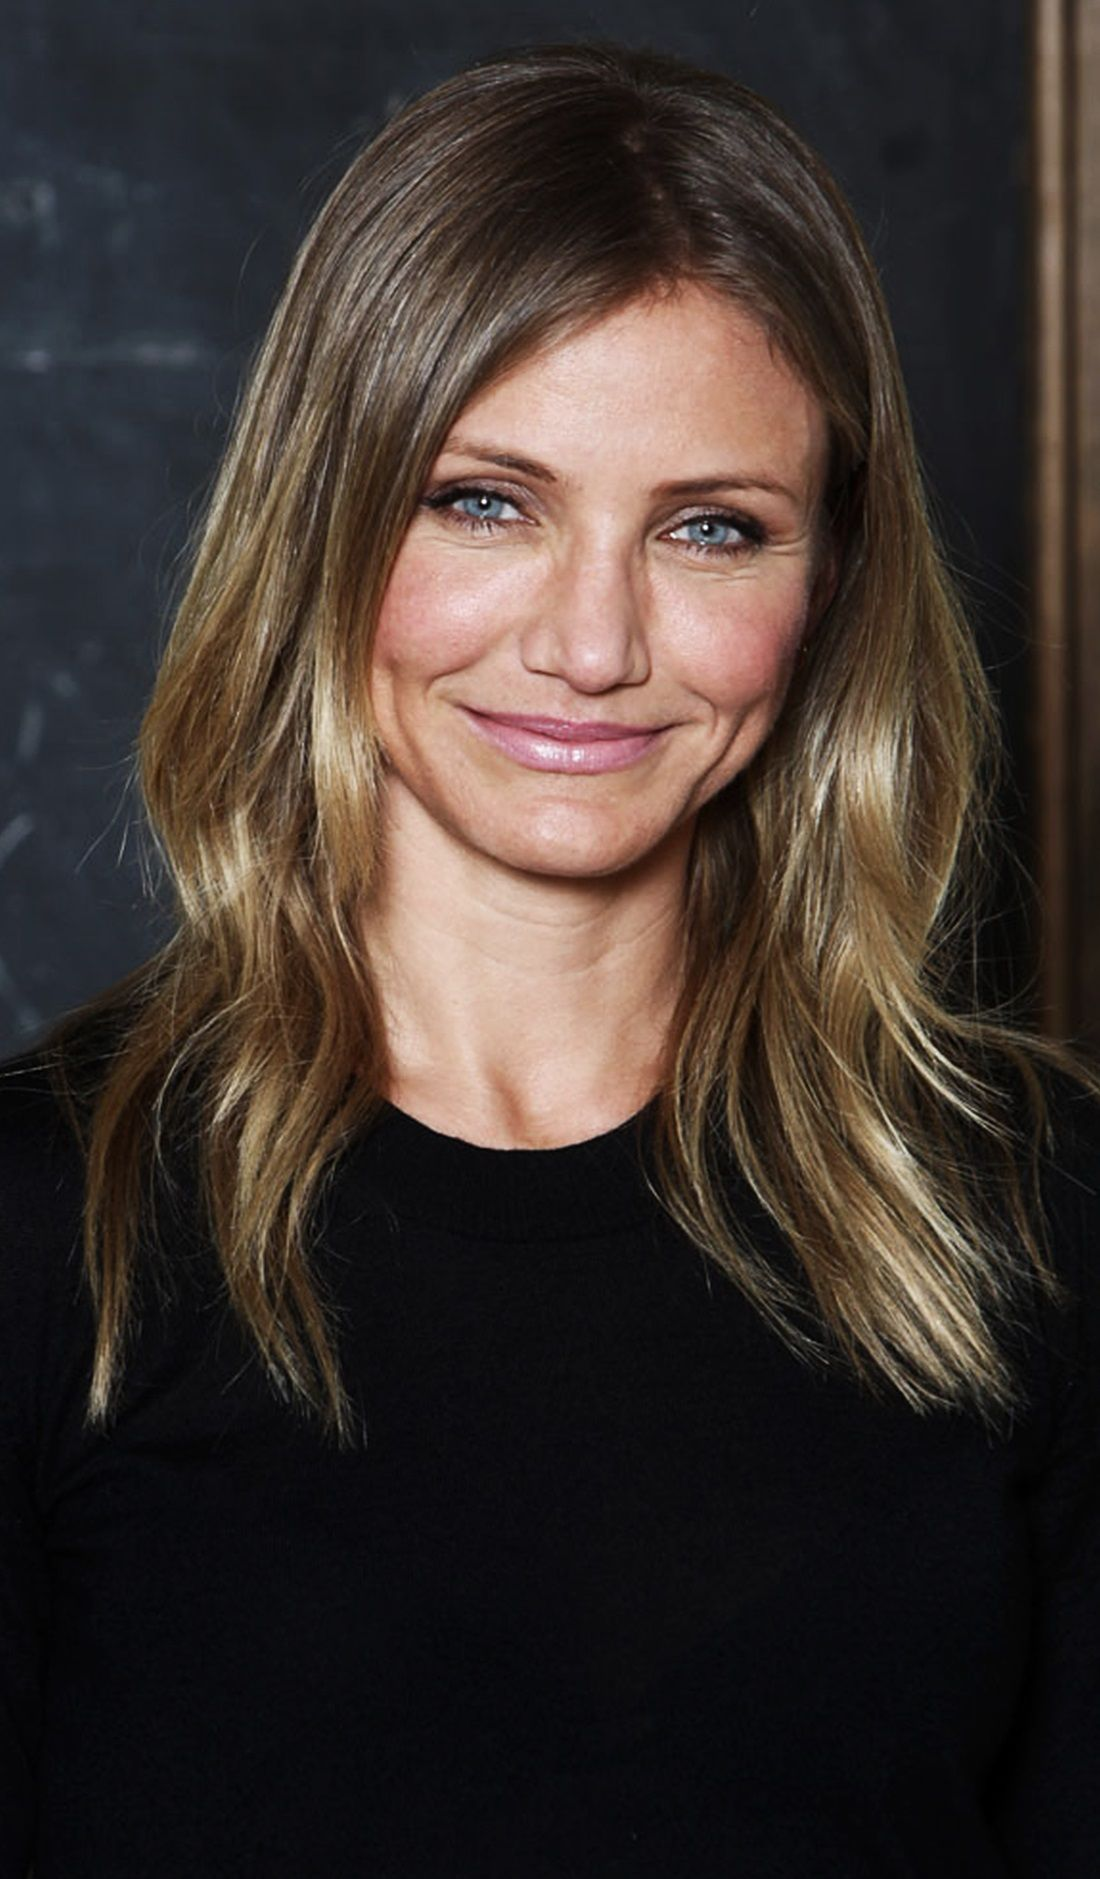 Cameron Diaz hair- i feel like my hair is accidentally doing this. seems like its getting darker.